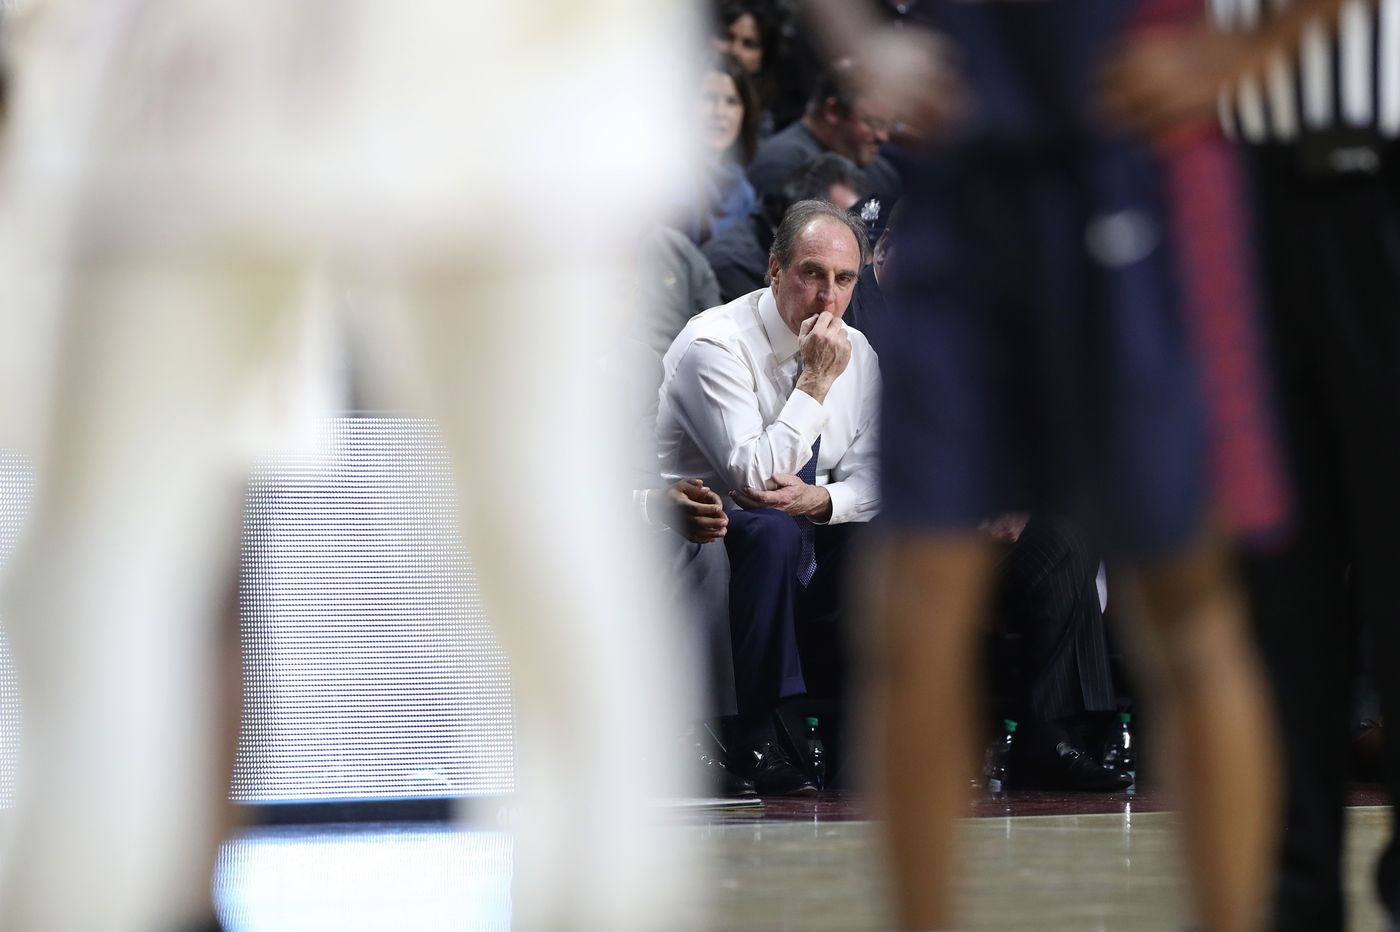 As Fran Dunphy's time at Temple runs short, former Owls and Penn players reminisce about their 'complicated' coach